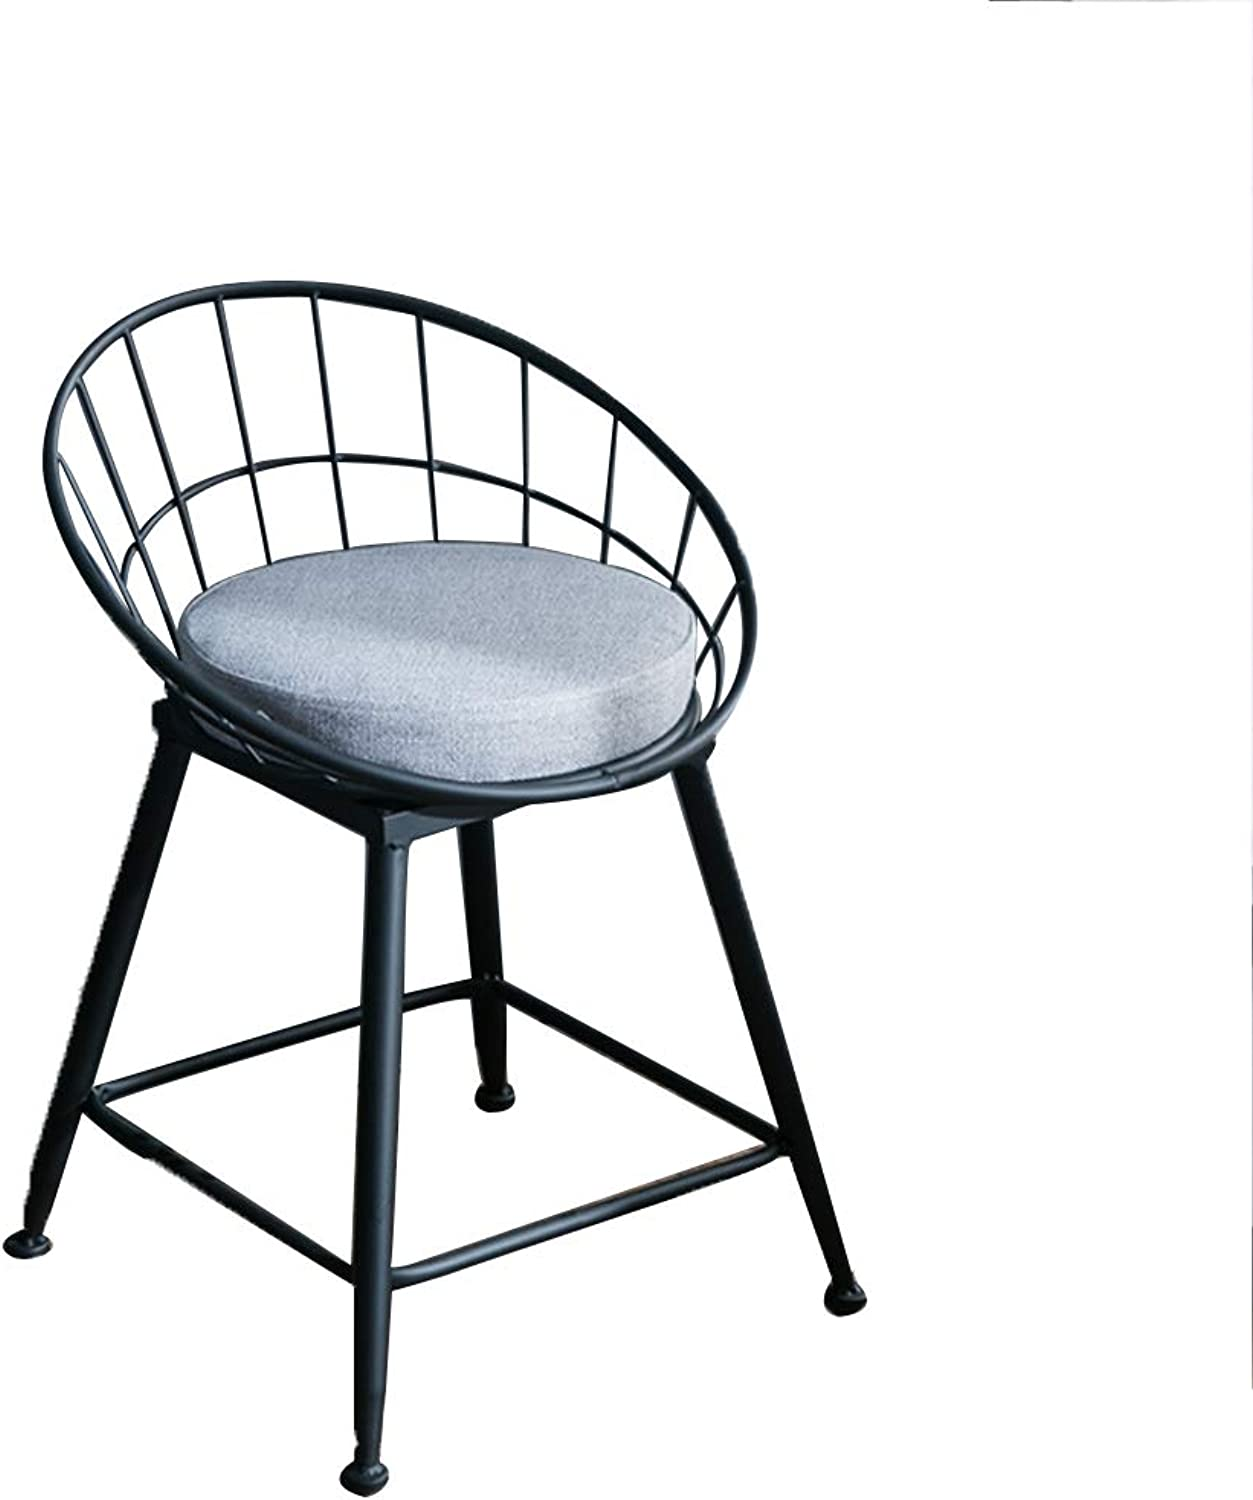 Barstools Chair High Stool Bar Stool Breakfast Chair and Cushion Seat Back Comfort Kitchen Breakfast Counter Greenhouse Black (Size   45x45x45cm)